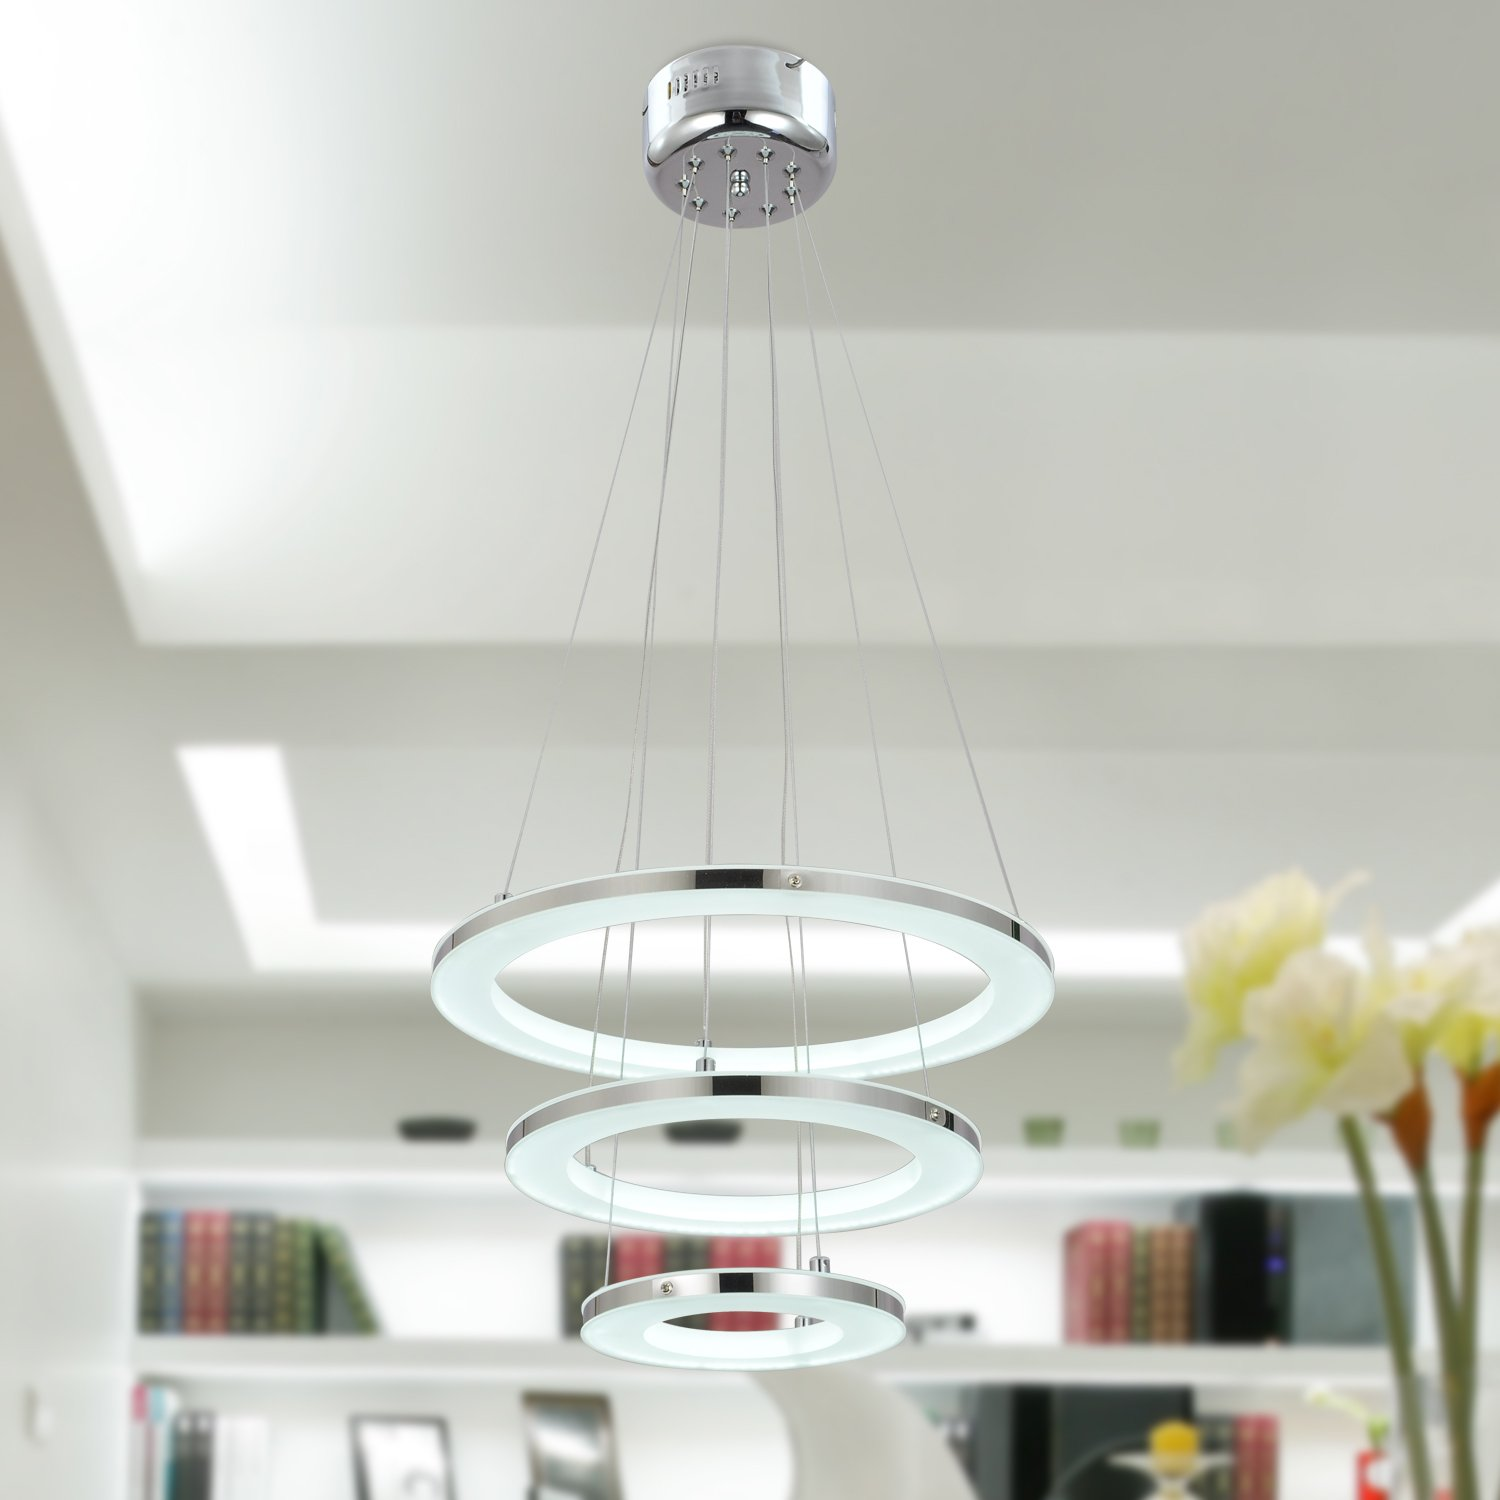 UNITARY BRAND Modern Nature White LED Acrylic Pendant Light With 3 Rings  Max 33W Chrome Finish     Amazon.com